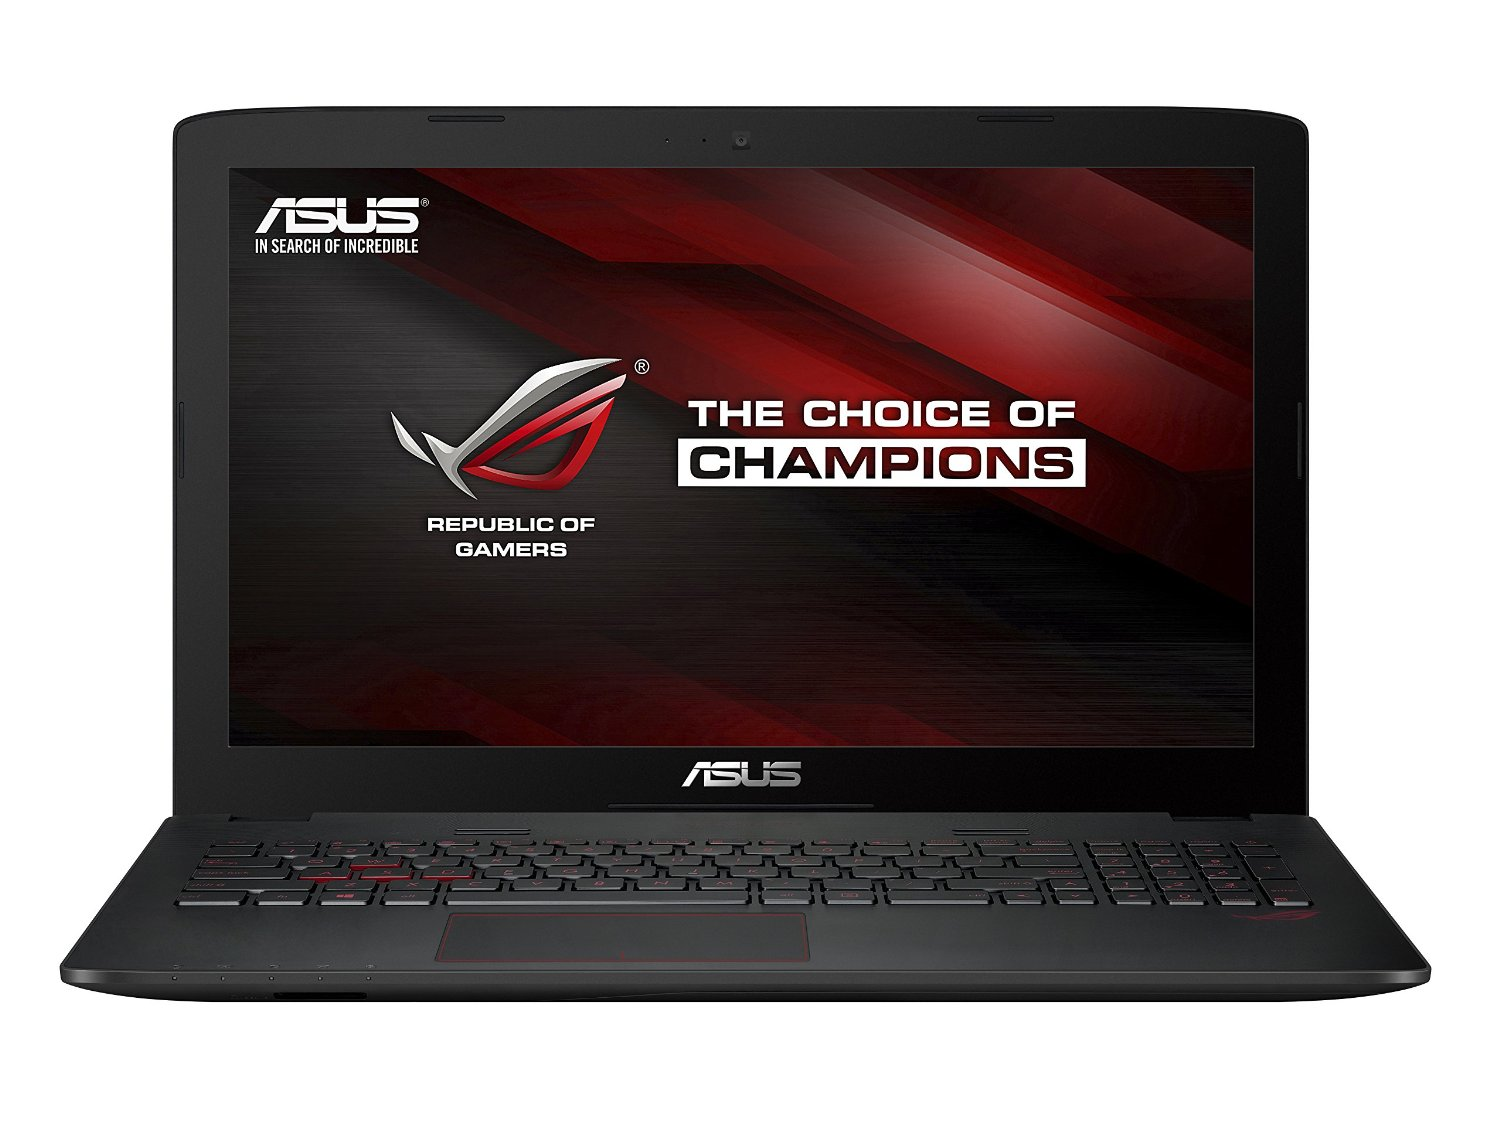 ASUS ROG GL552VW-DH71 – Review